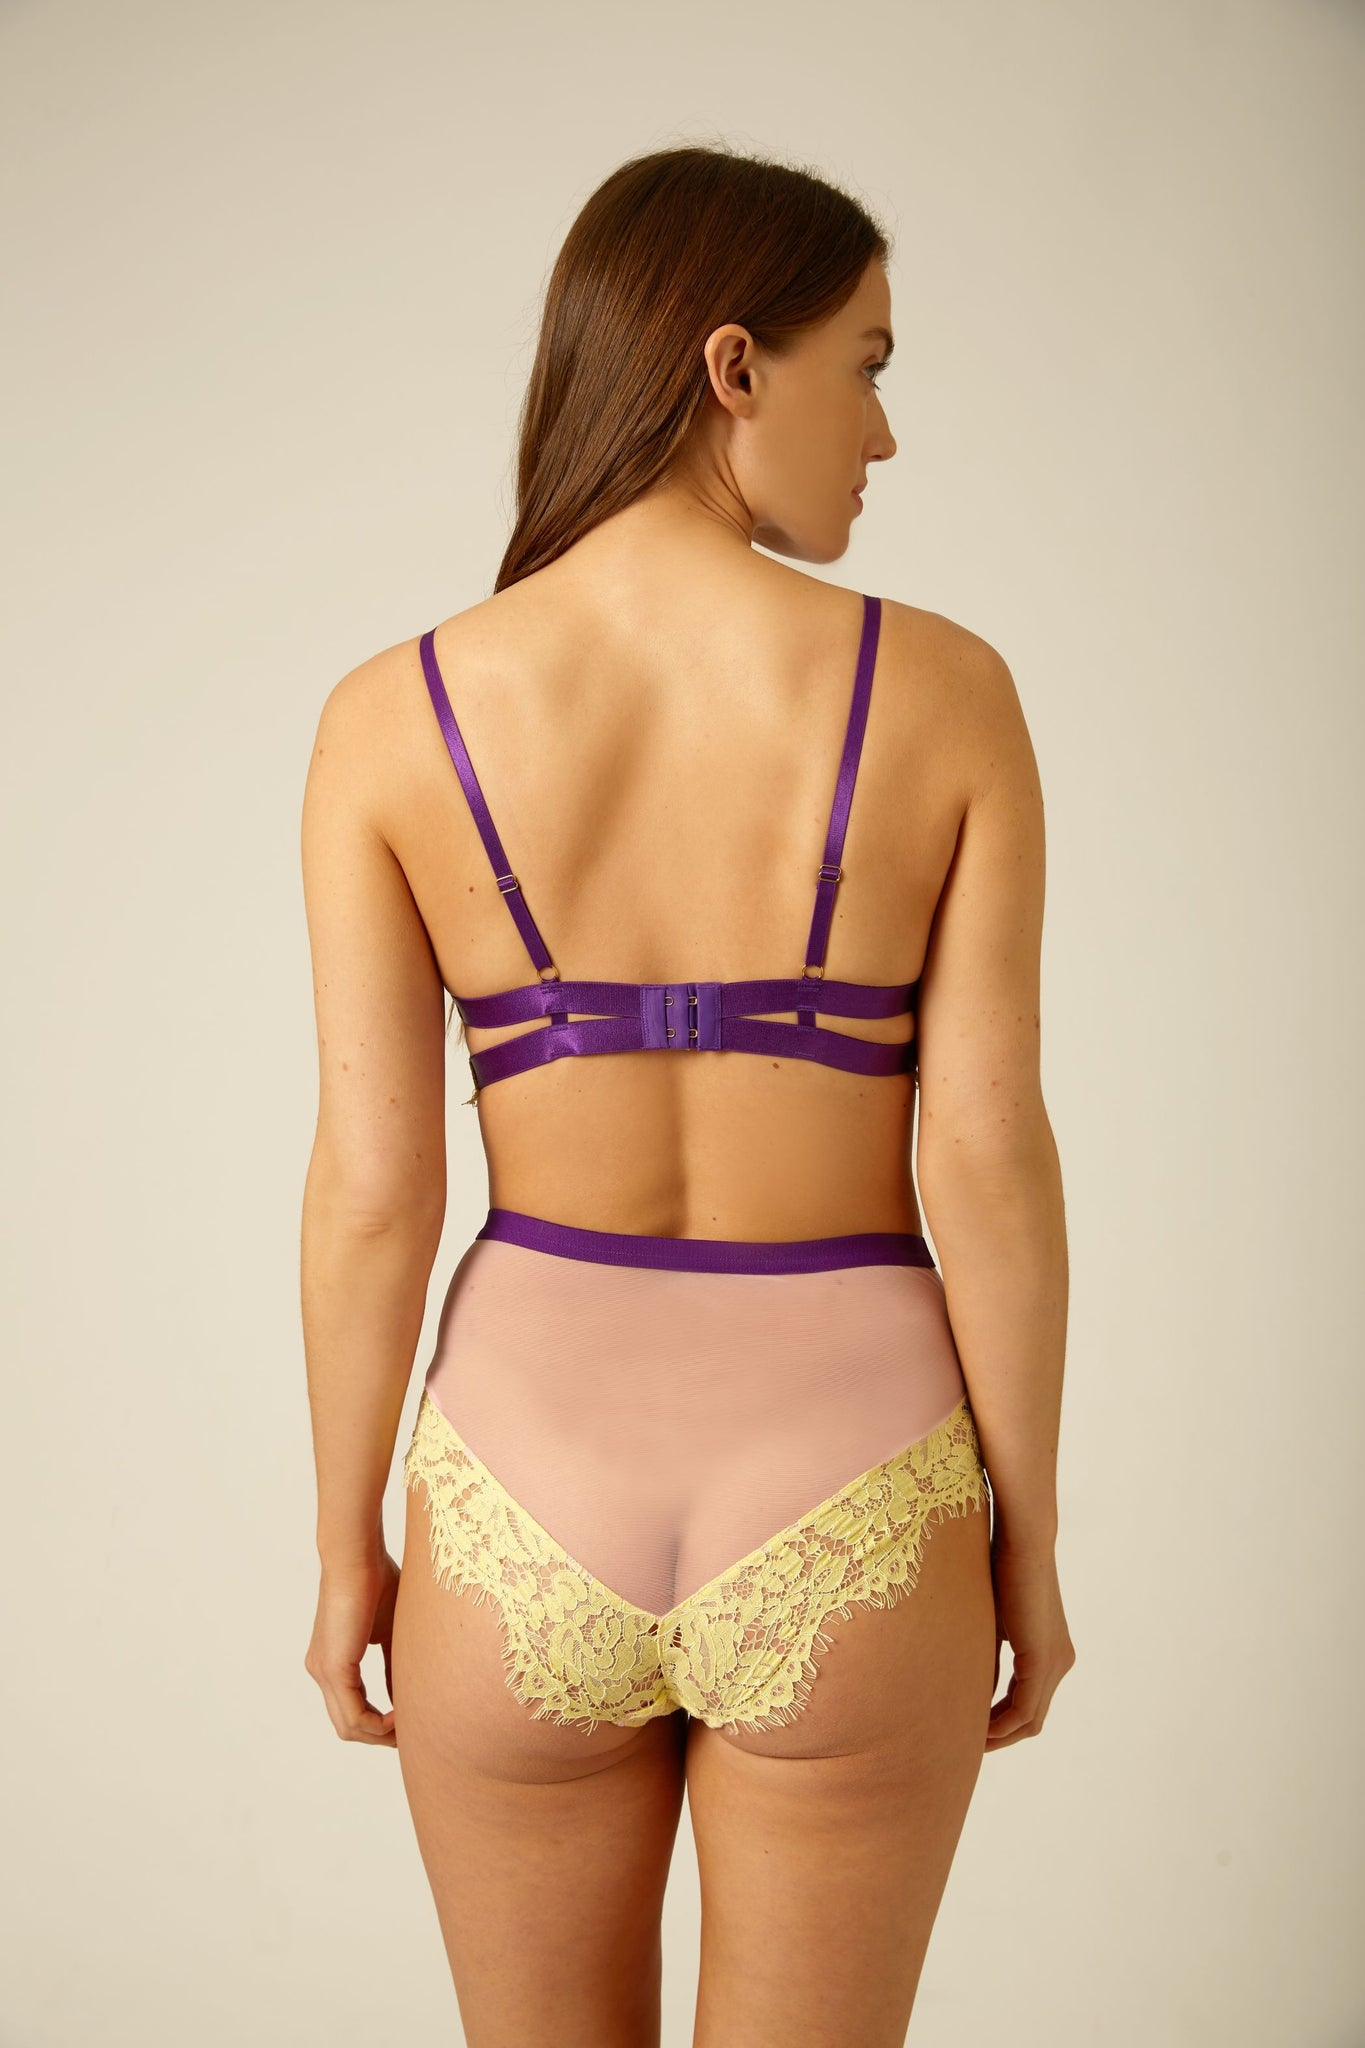 Evie High Waist Knicker - Dora Larsen | Colourful Lingerie‎